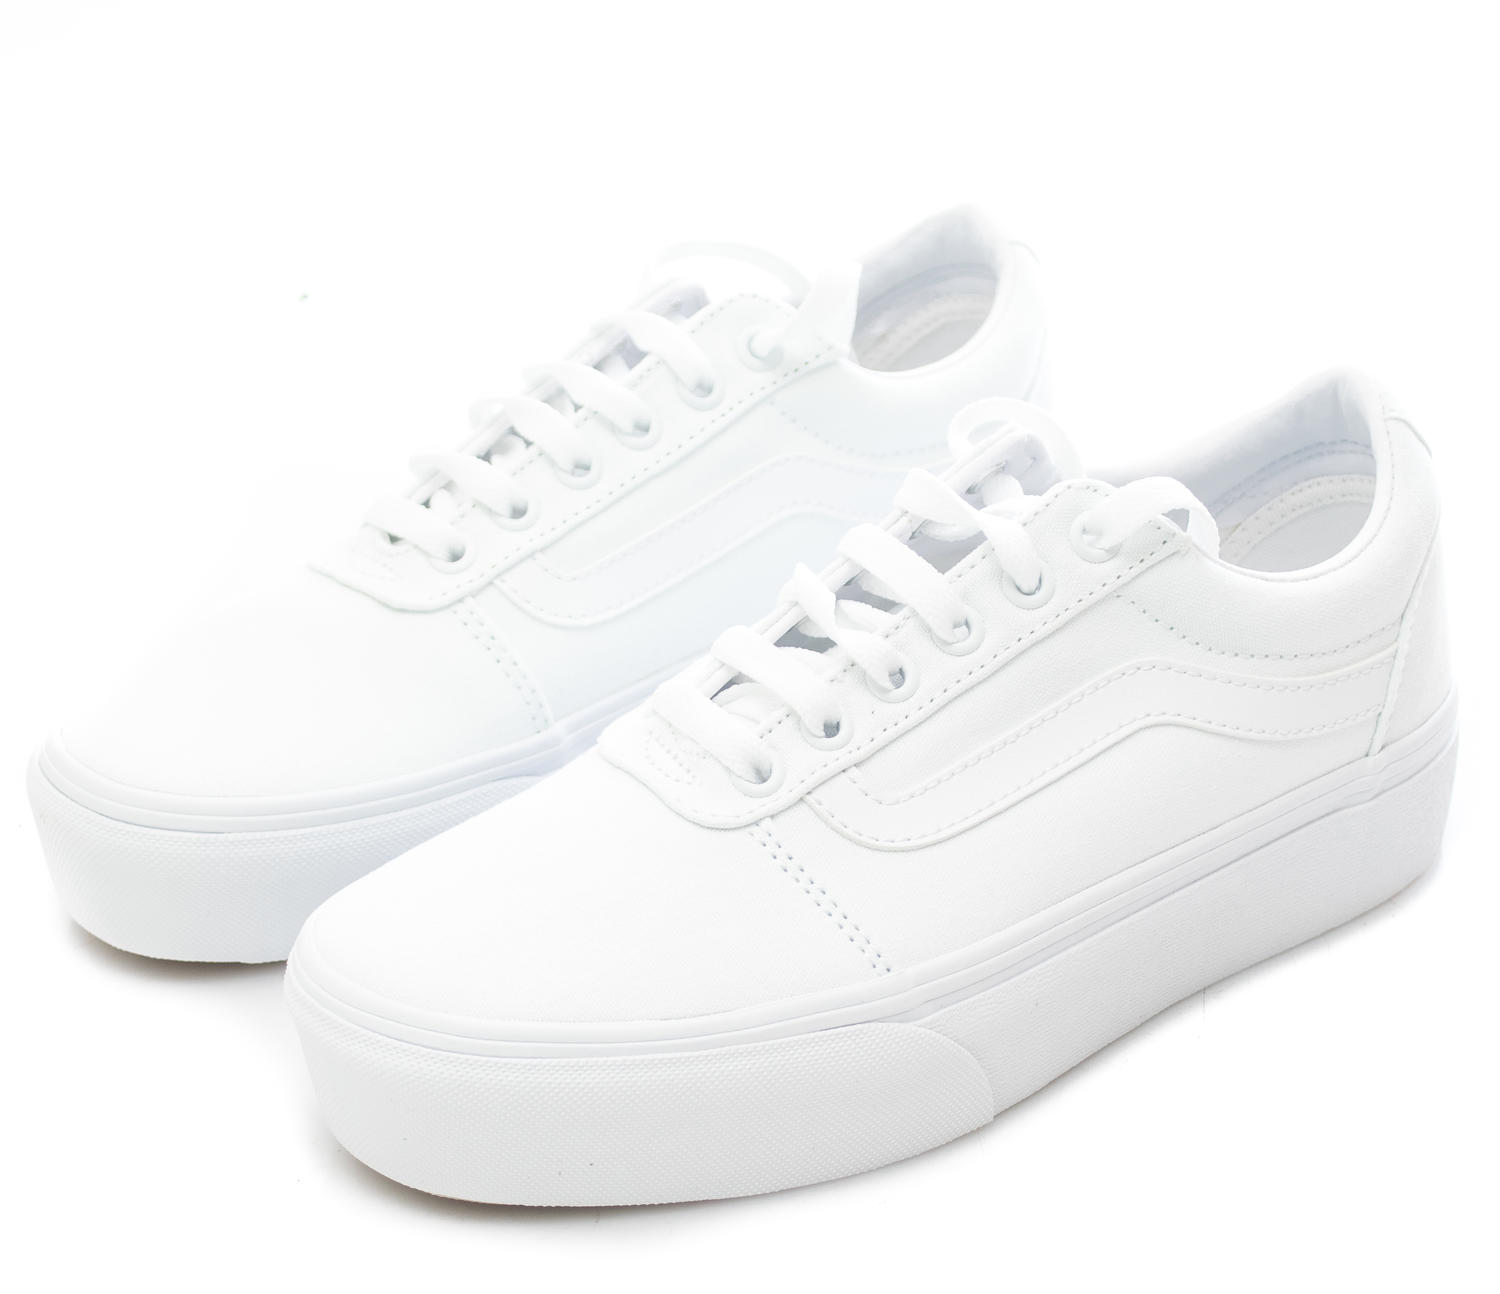 vans blanches plateforme